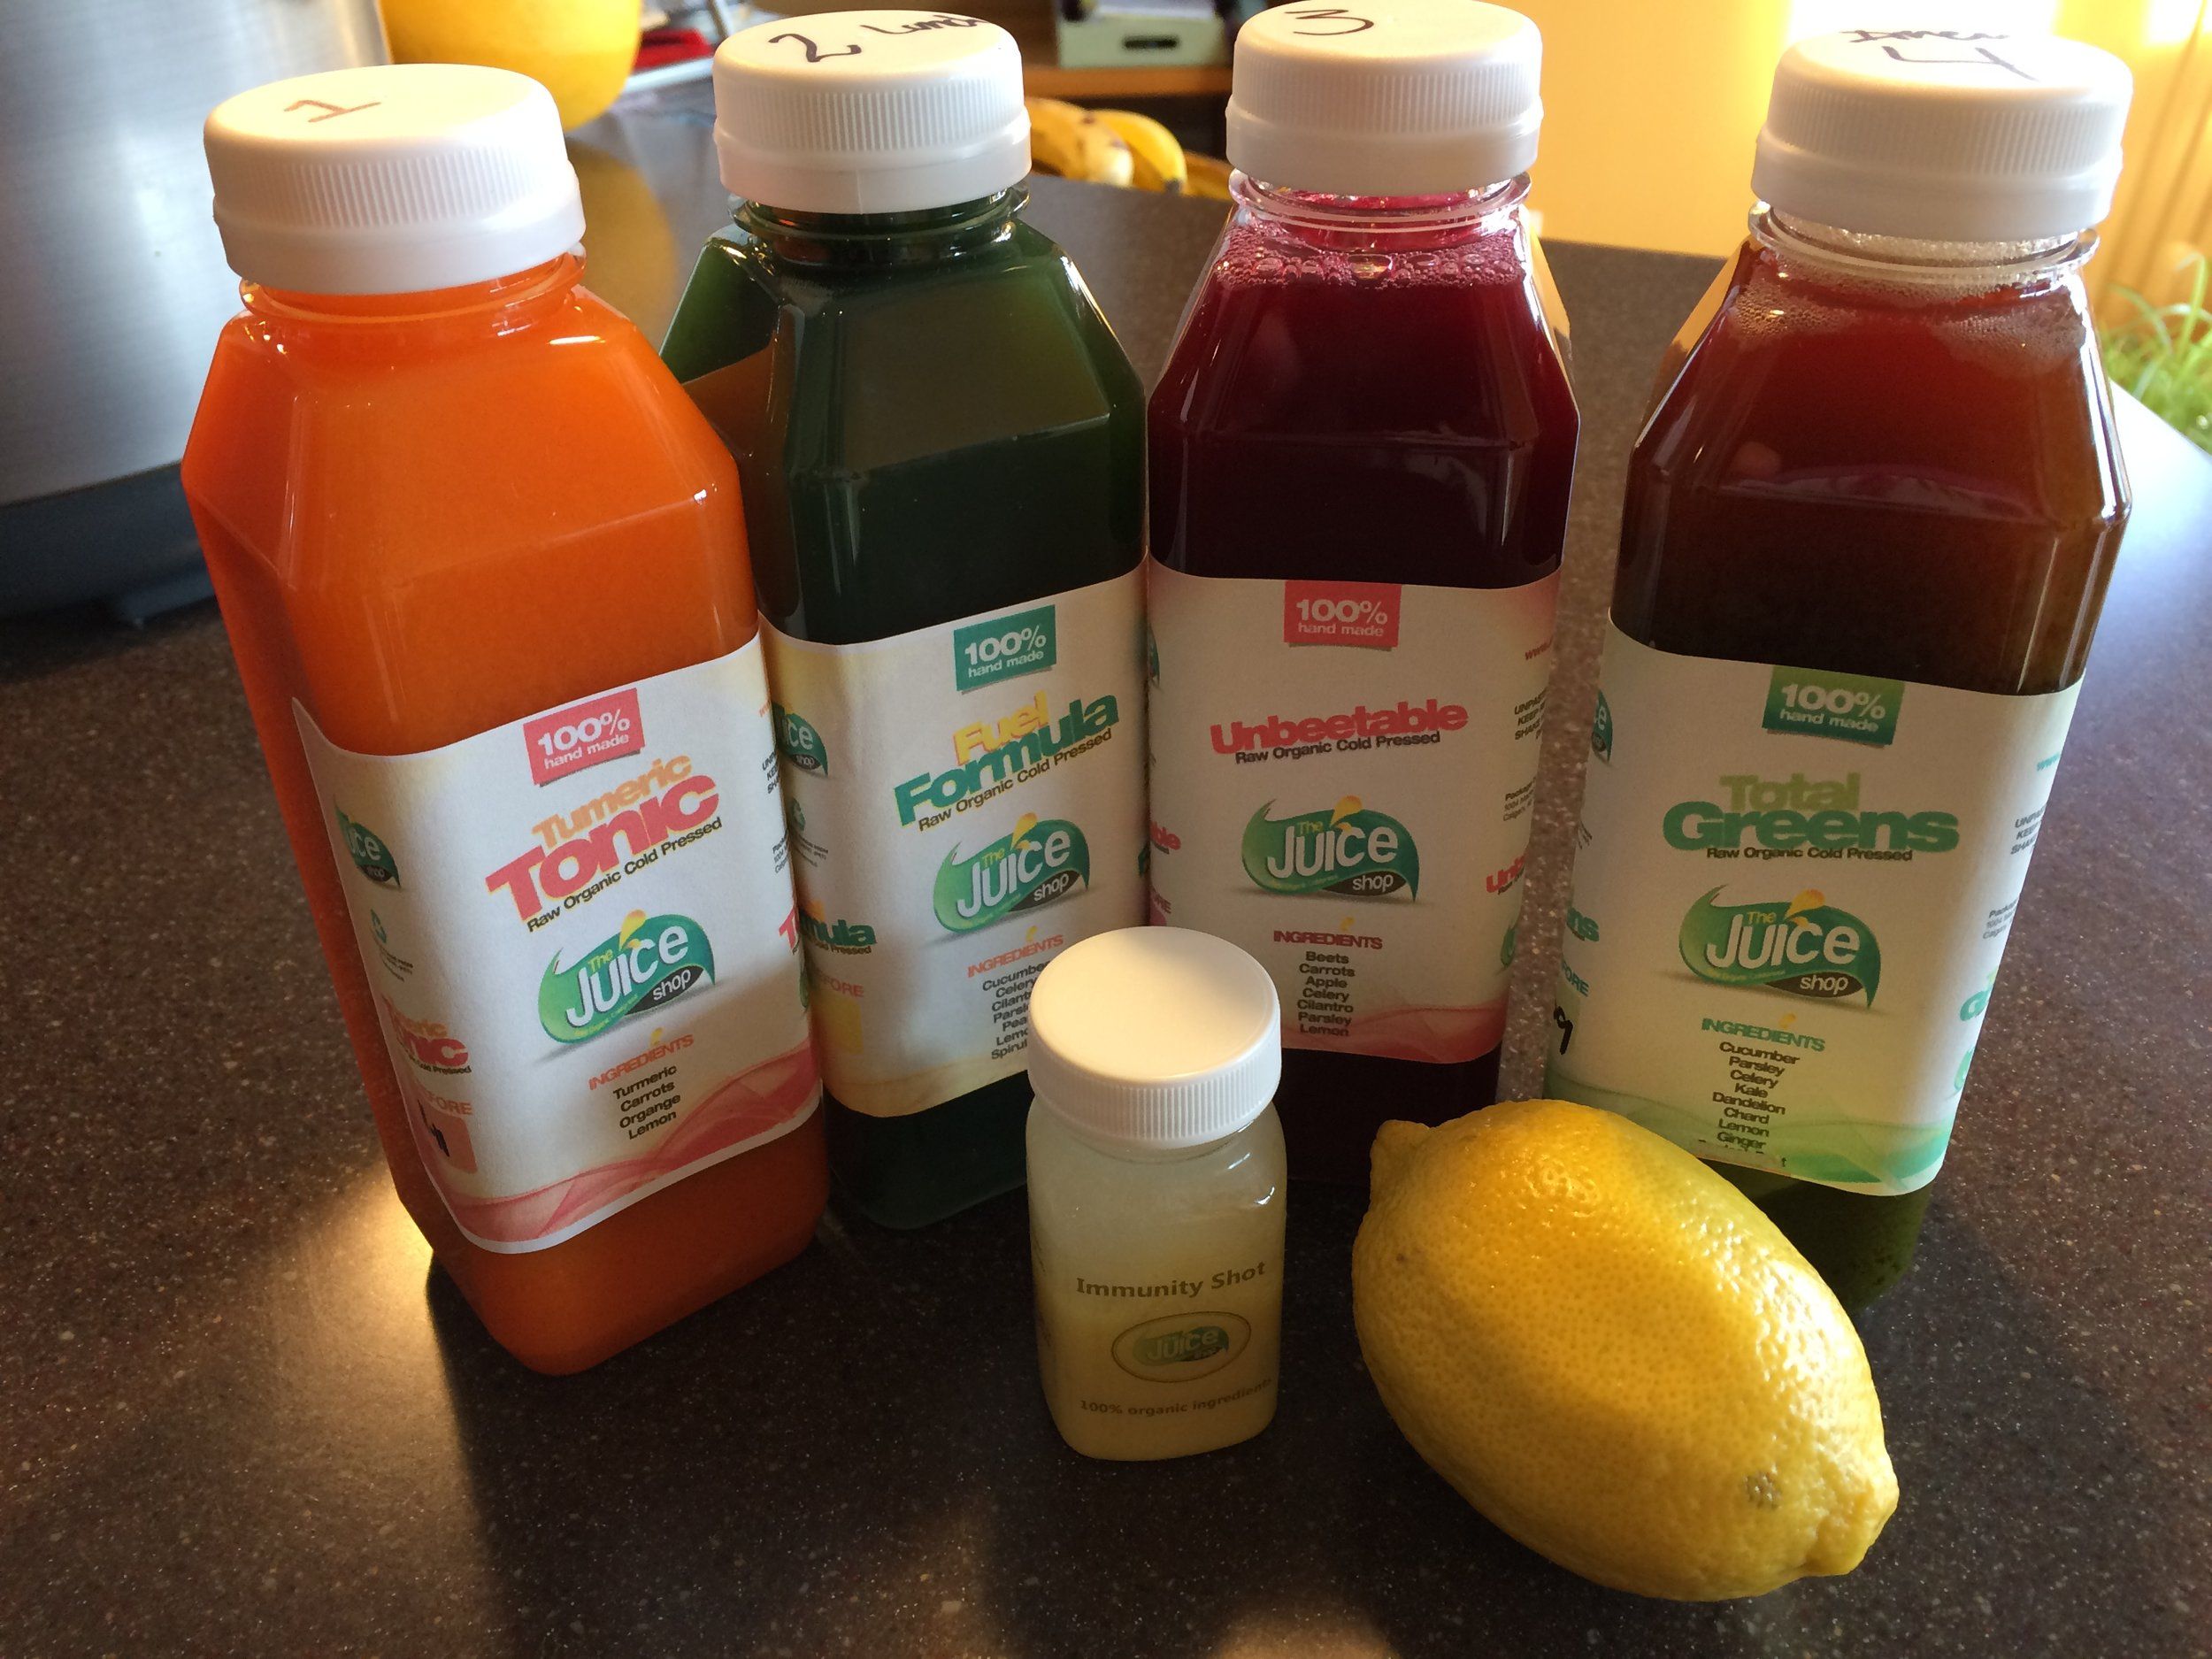 The Juice Shop's Liver Cleanse